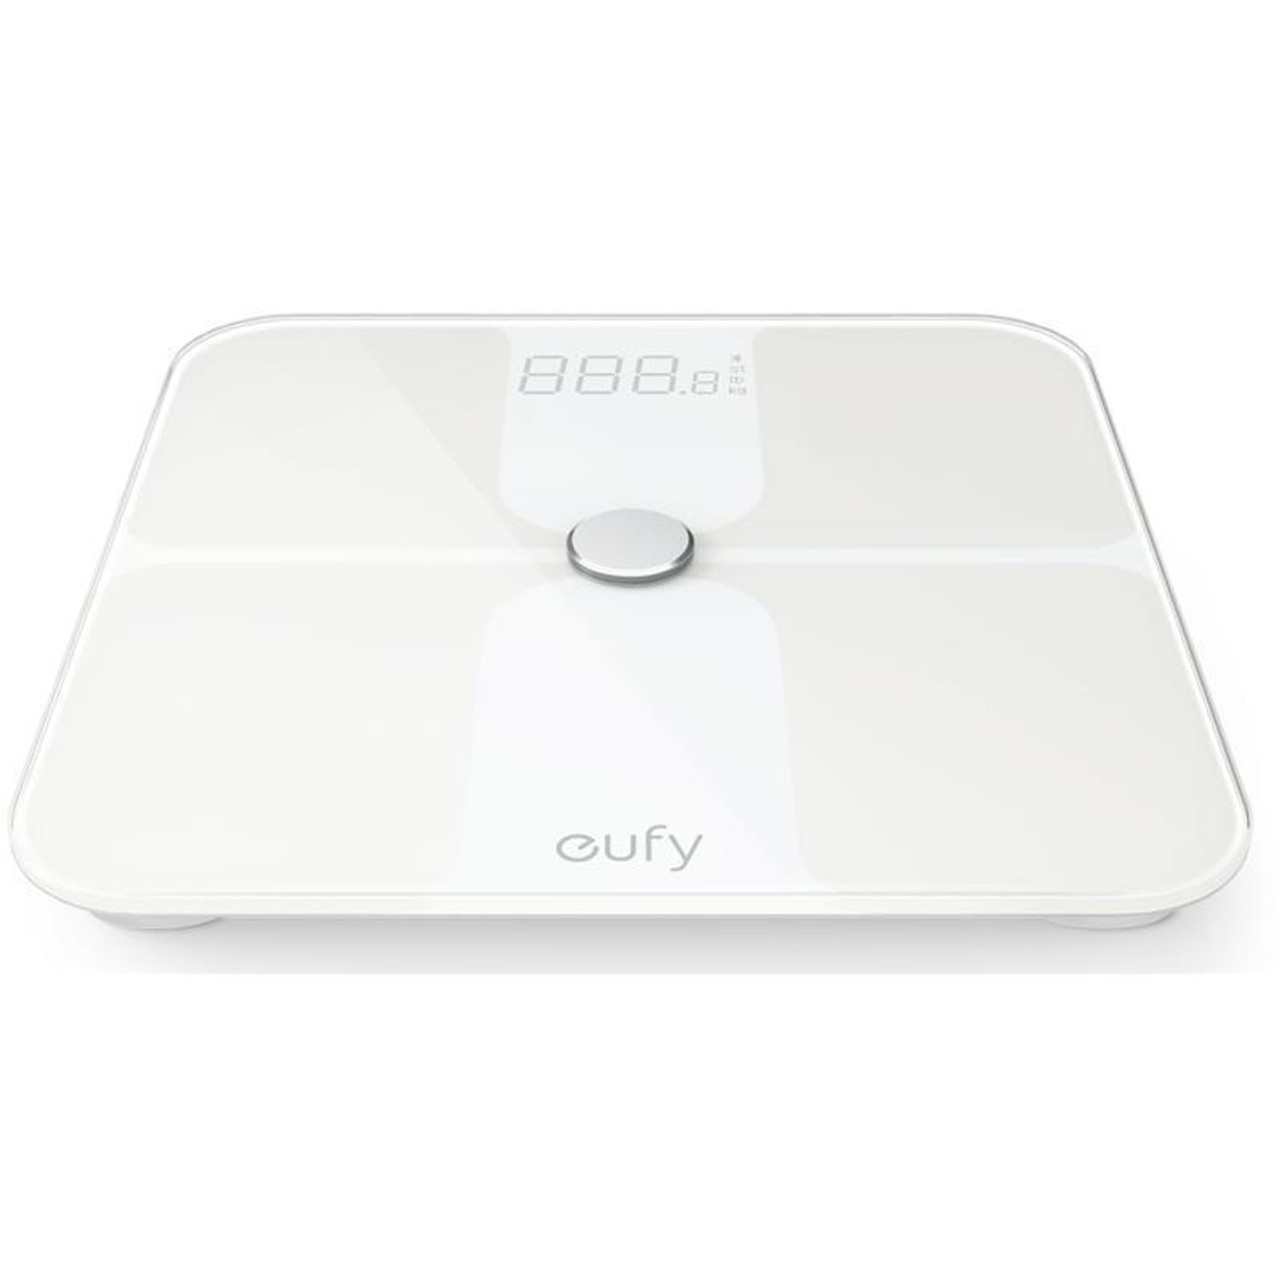 Eufy AK-T9140011 Bodysense 12 Measurement LED Smart Scale with Bluetooth - White/Black